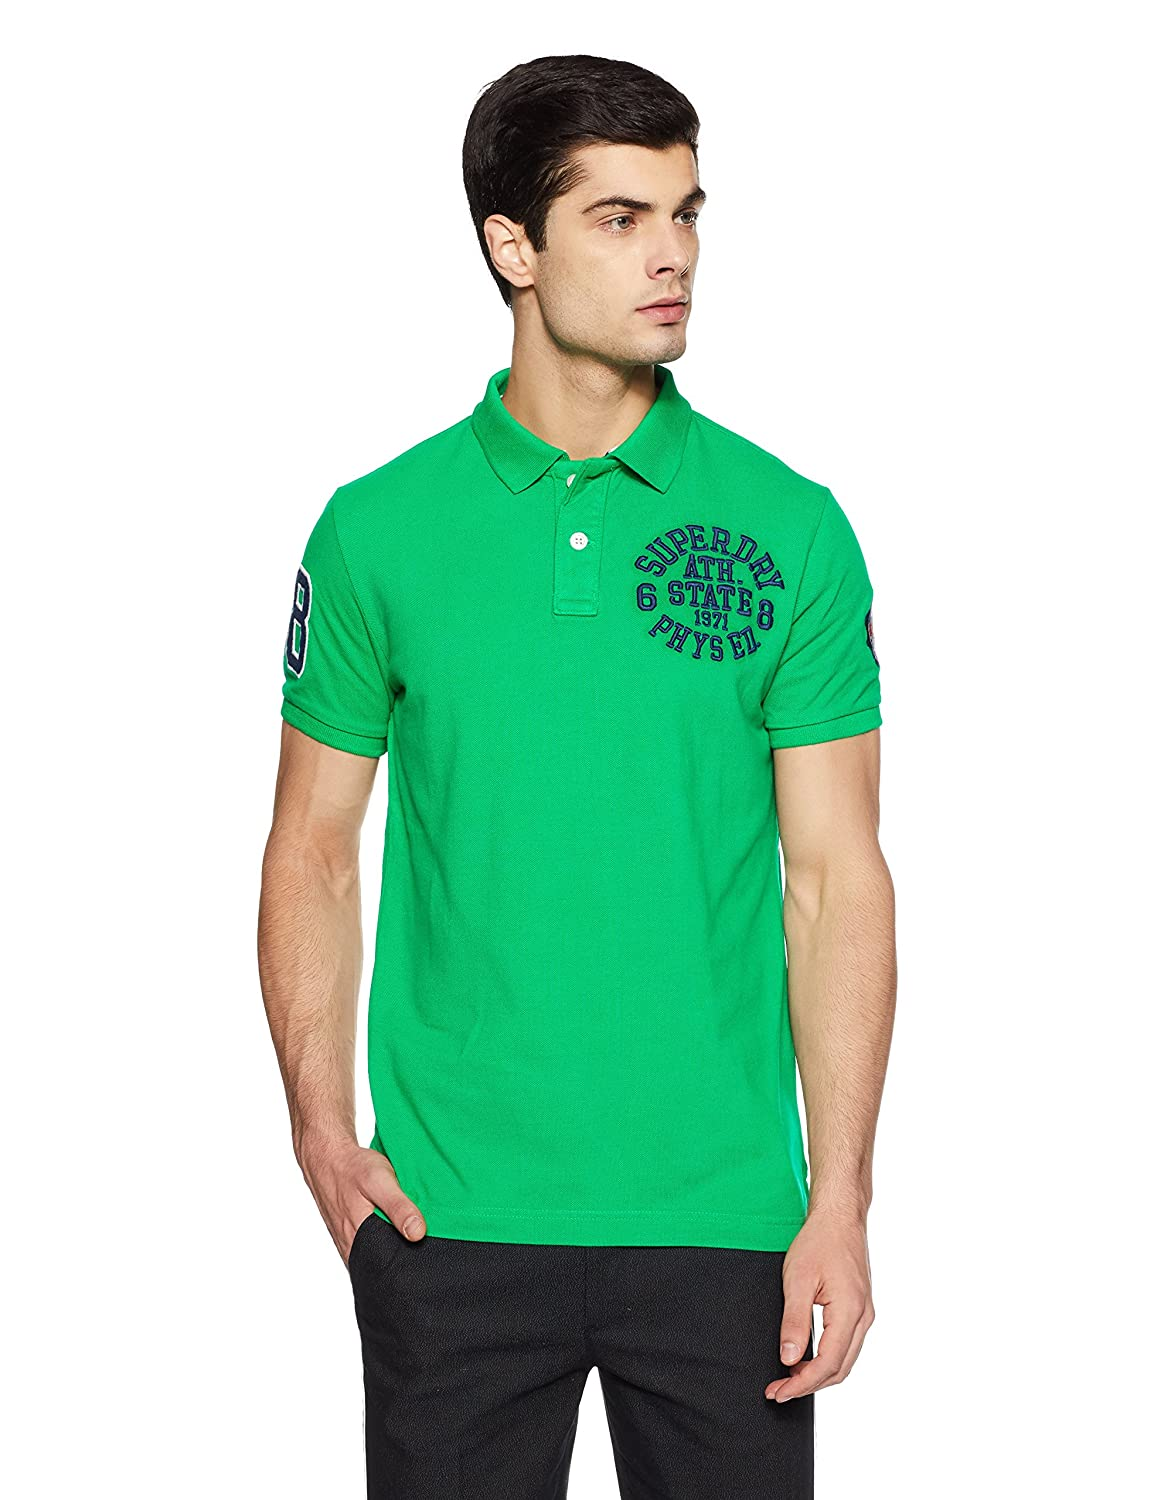 Superdry Polo M11011TQF1 OO2 Classic S/S SUPERST: Amazon.es: Ropa ...